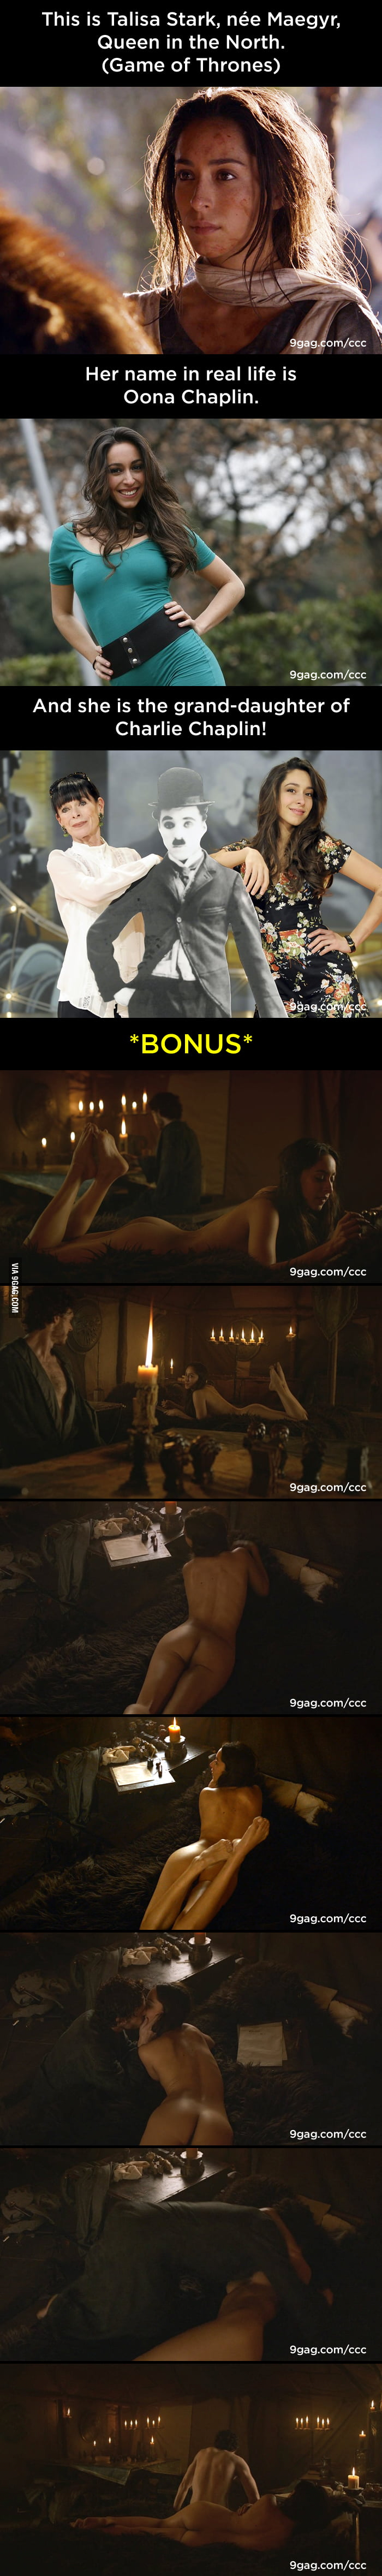 This is Talisa Stark, Queen in the North (Game of Thrones); and her real name is Oona Chaplin.